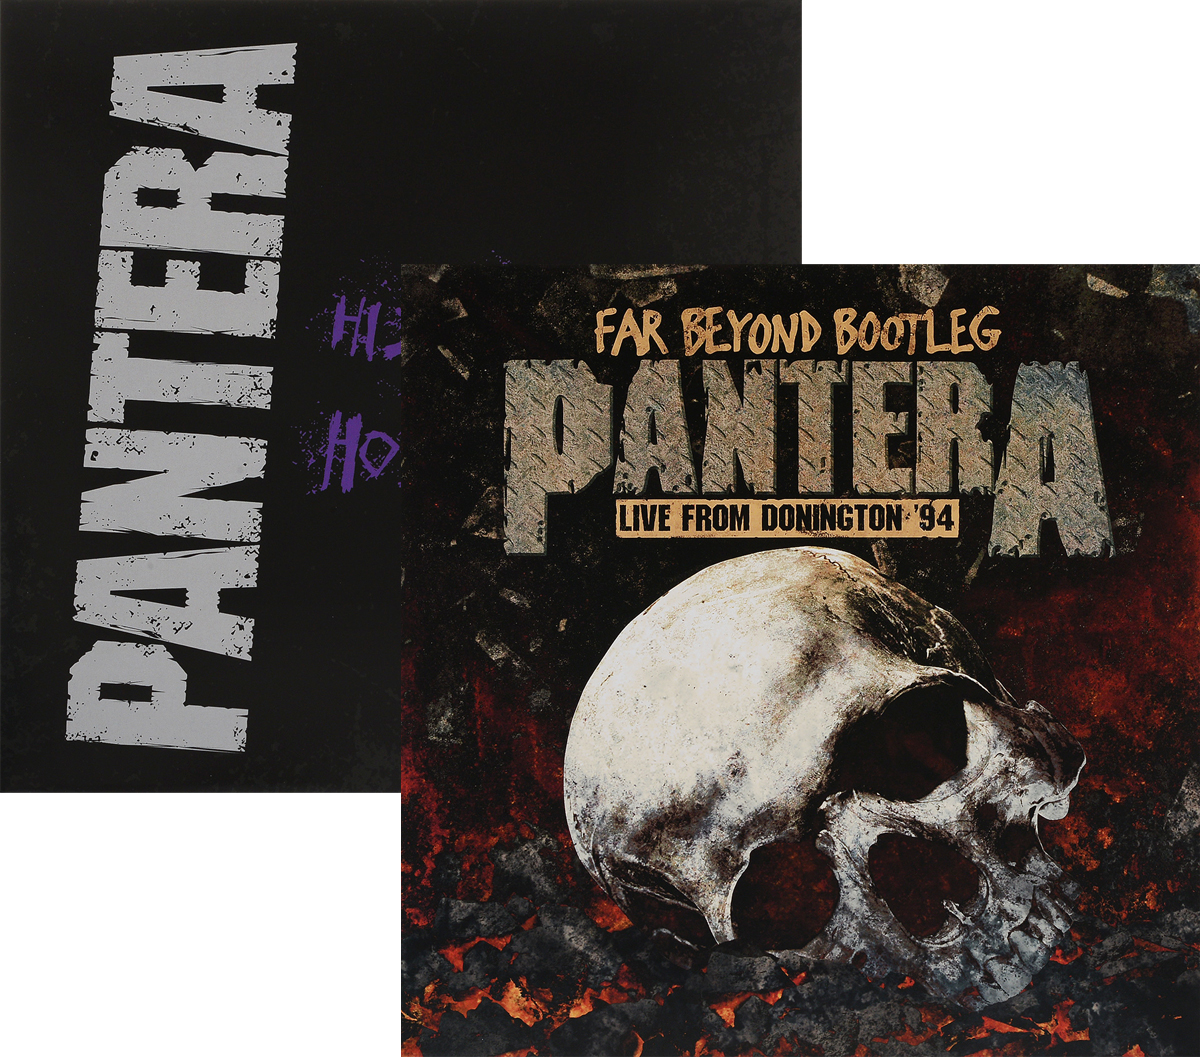 Pantera Pantera. History Of Hostility / Far Beyond Bootleg - Live From Donington '94 (2 LP) ac dc live at donington blu ray